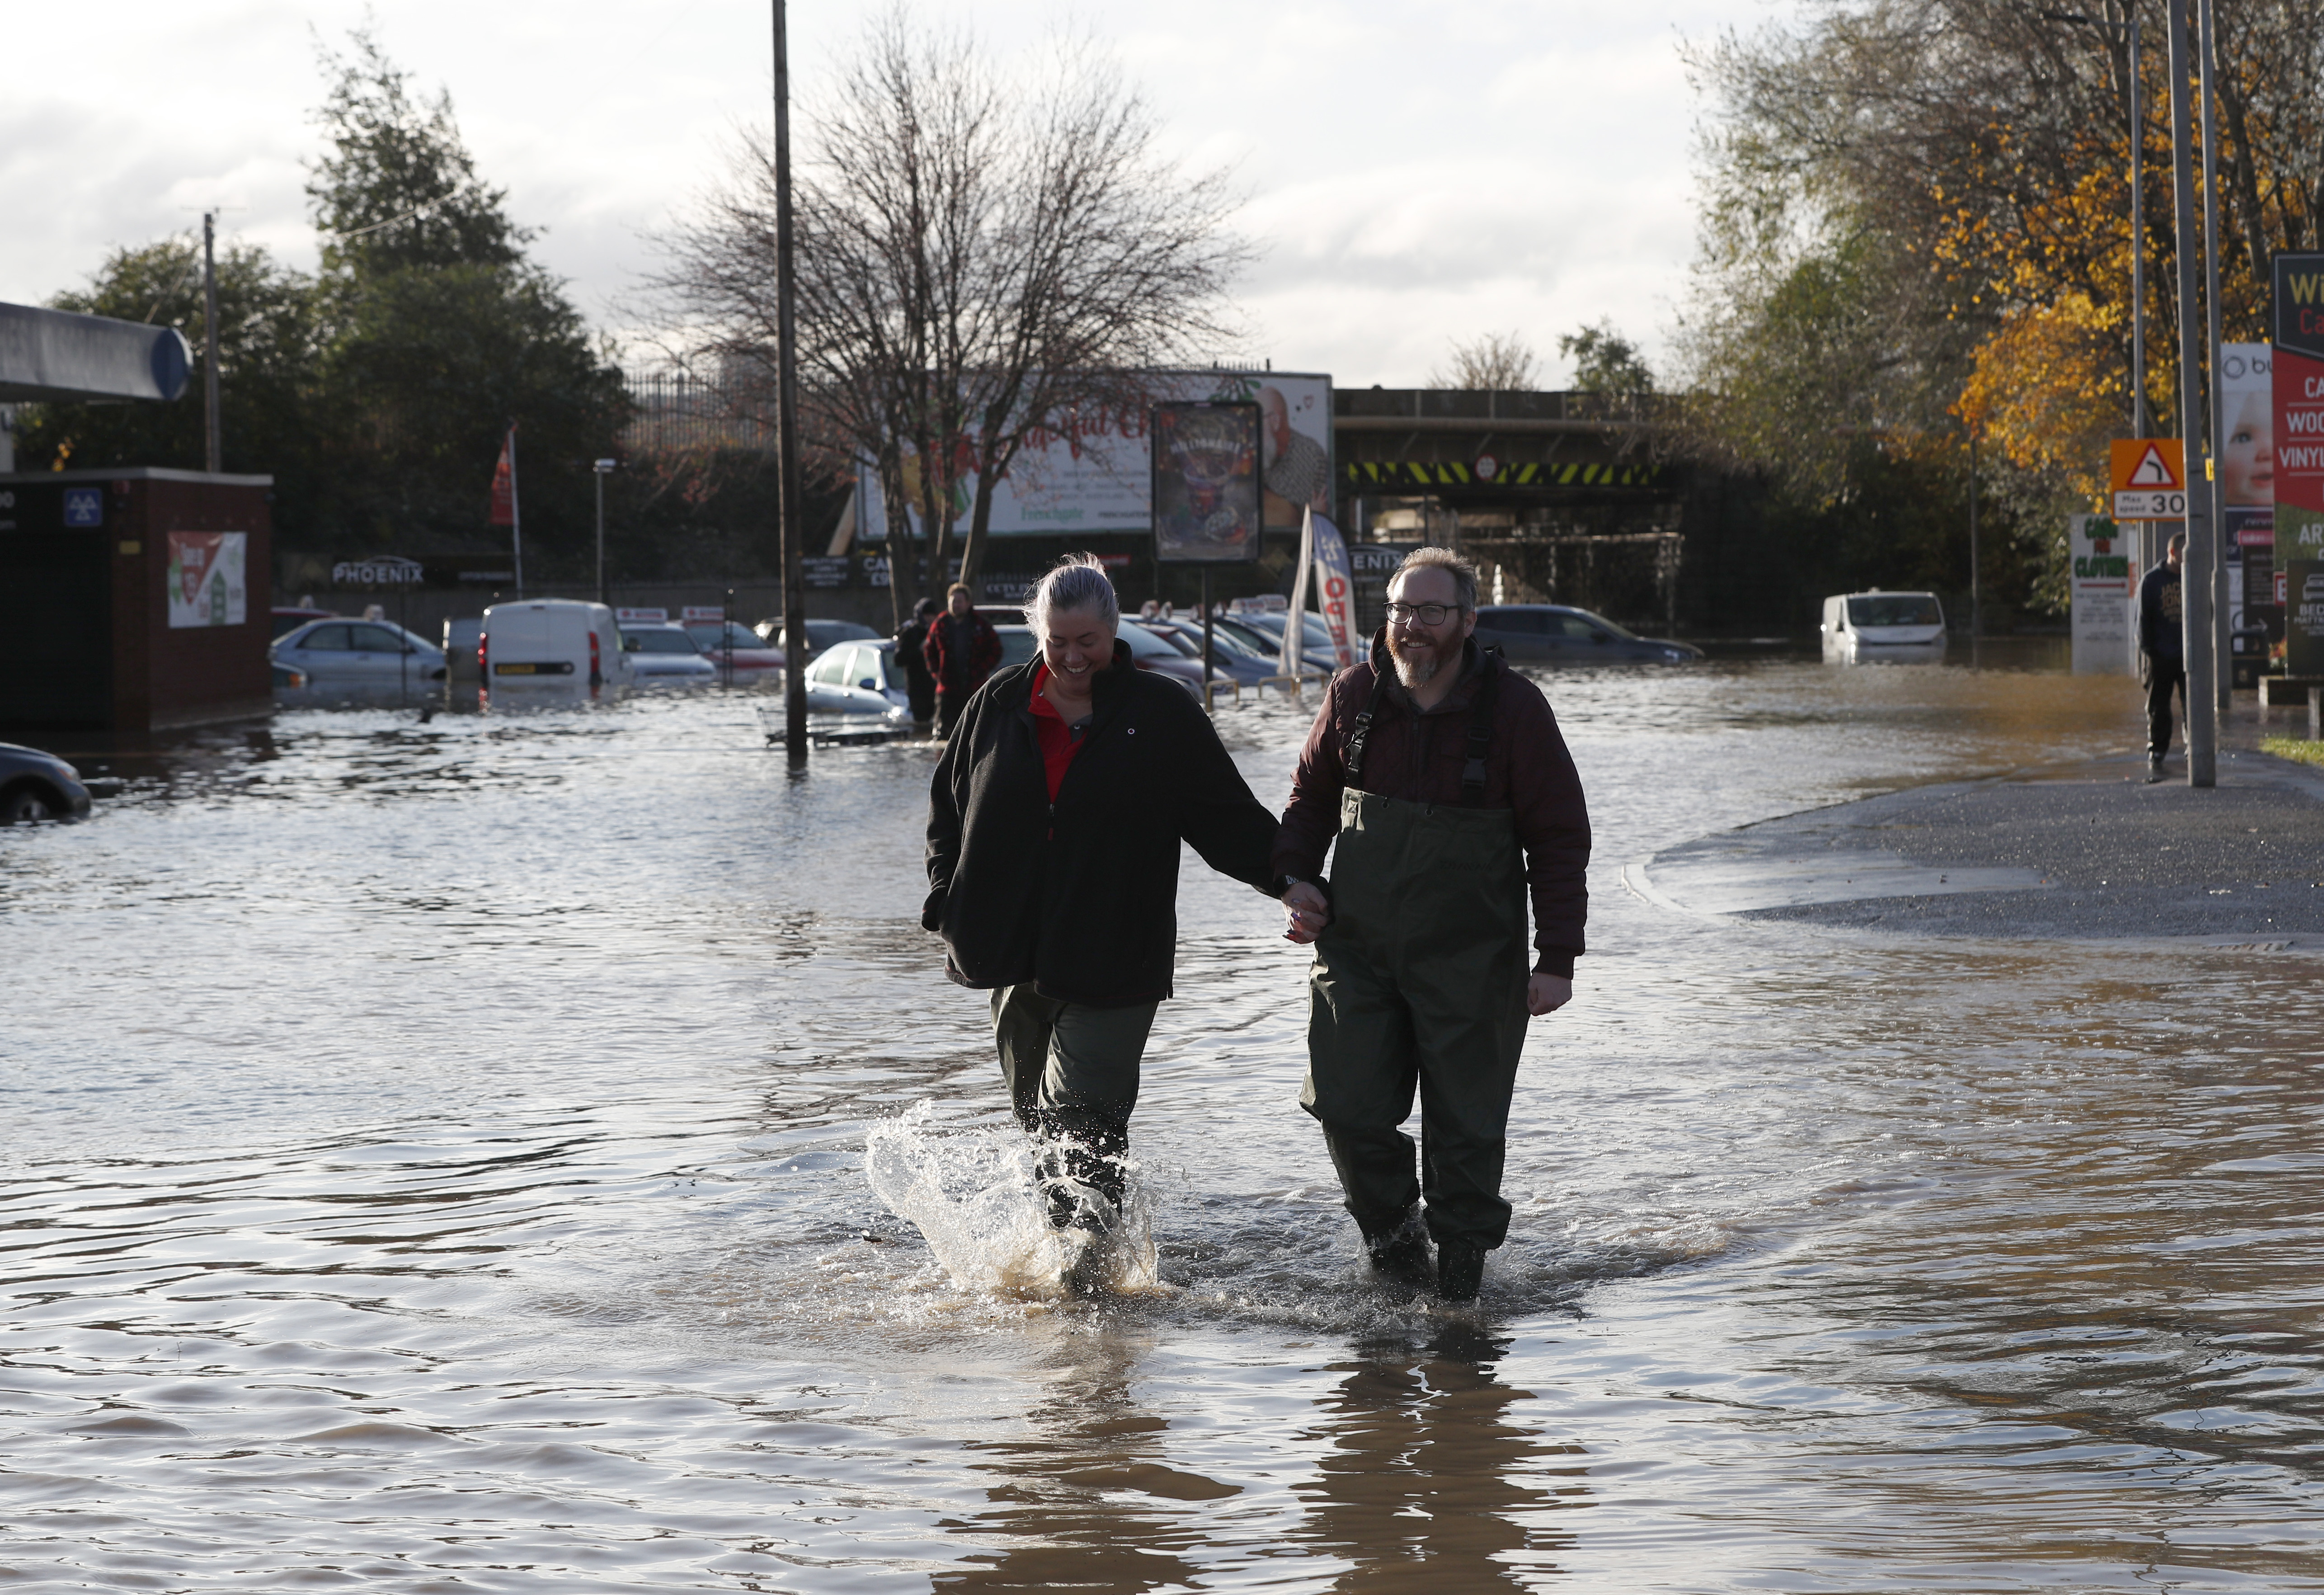 A couple wade through flood waters after the River Don burst its banks.